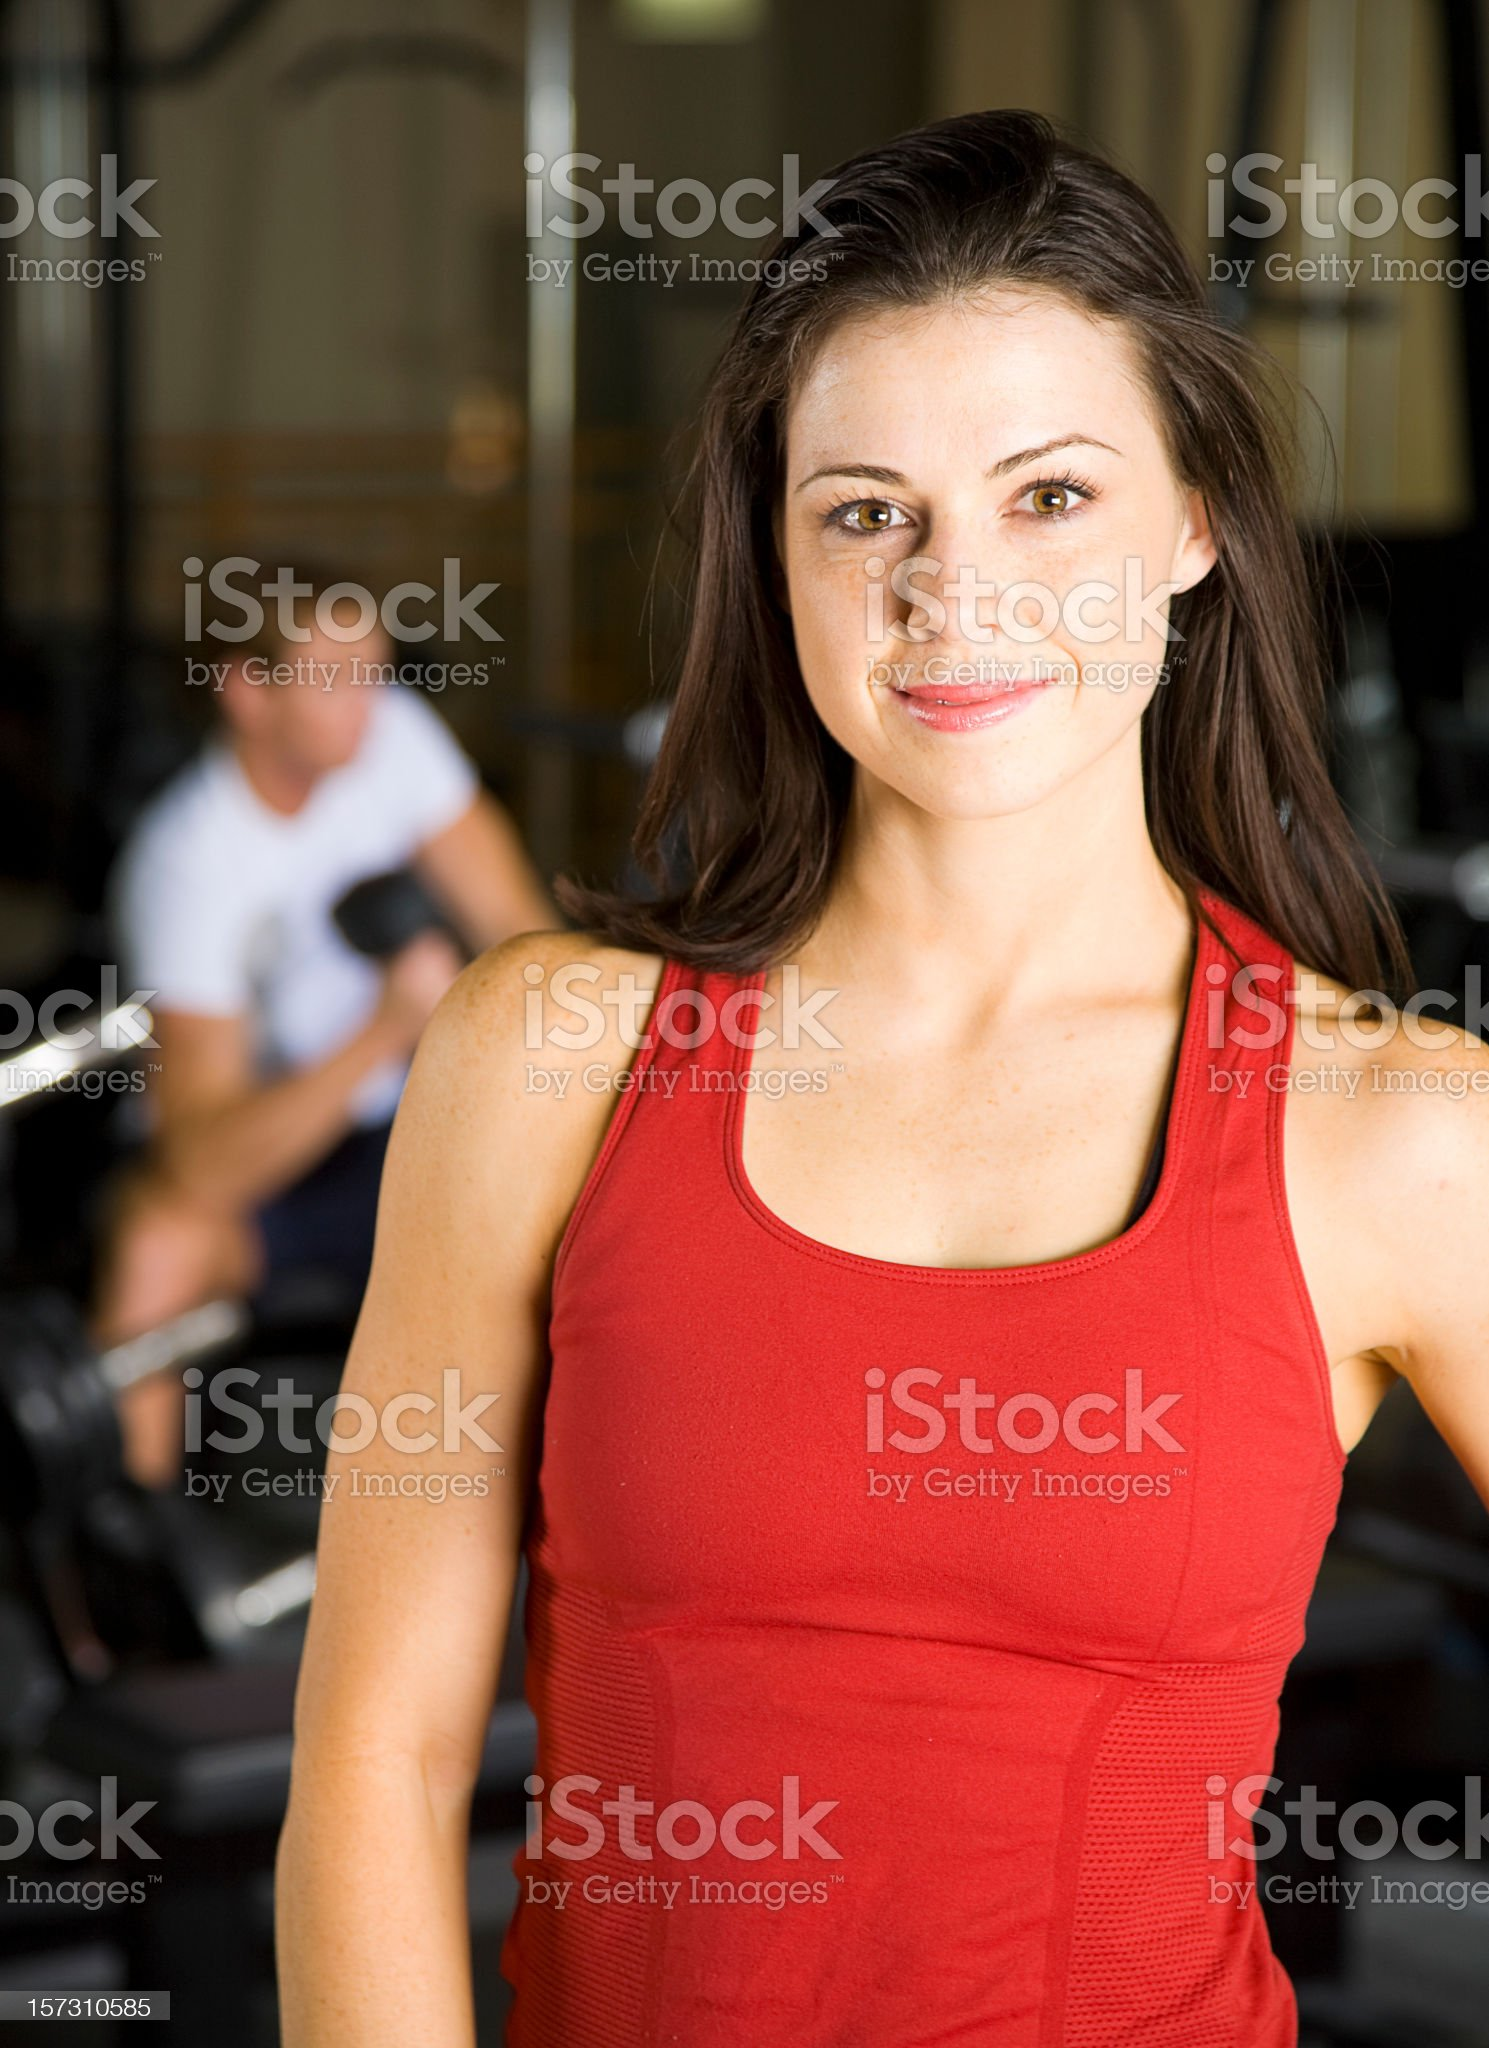 Athlete in a Health Club Gym royalty-free stock photo